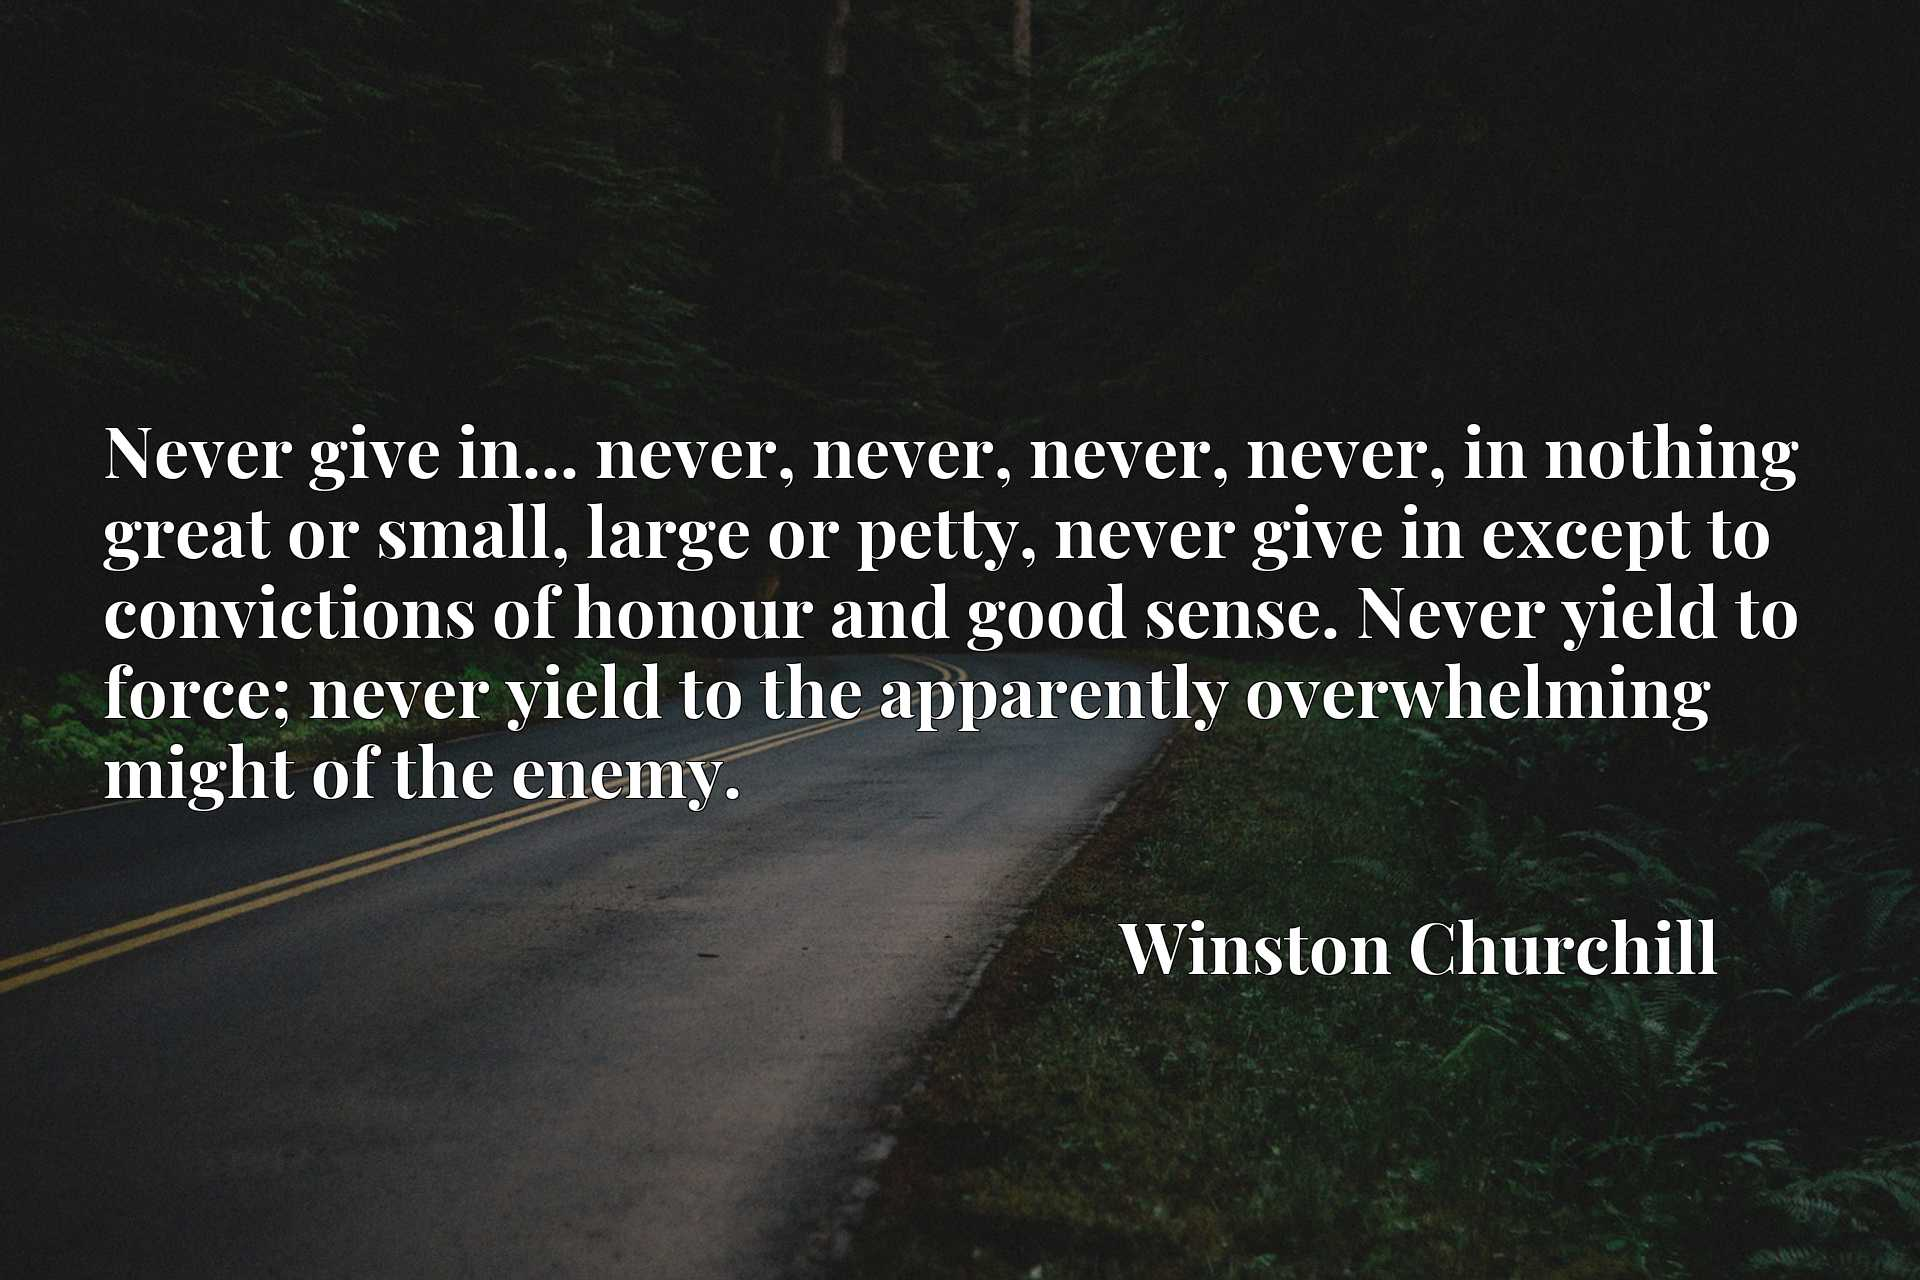 Never give in... never, never, never, never, in nothing great or small, large or petty, never give in except to convictions of honour and good sense. Never yield to force; never yield to the apparently overwhelming might of the enemy.